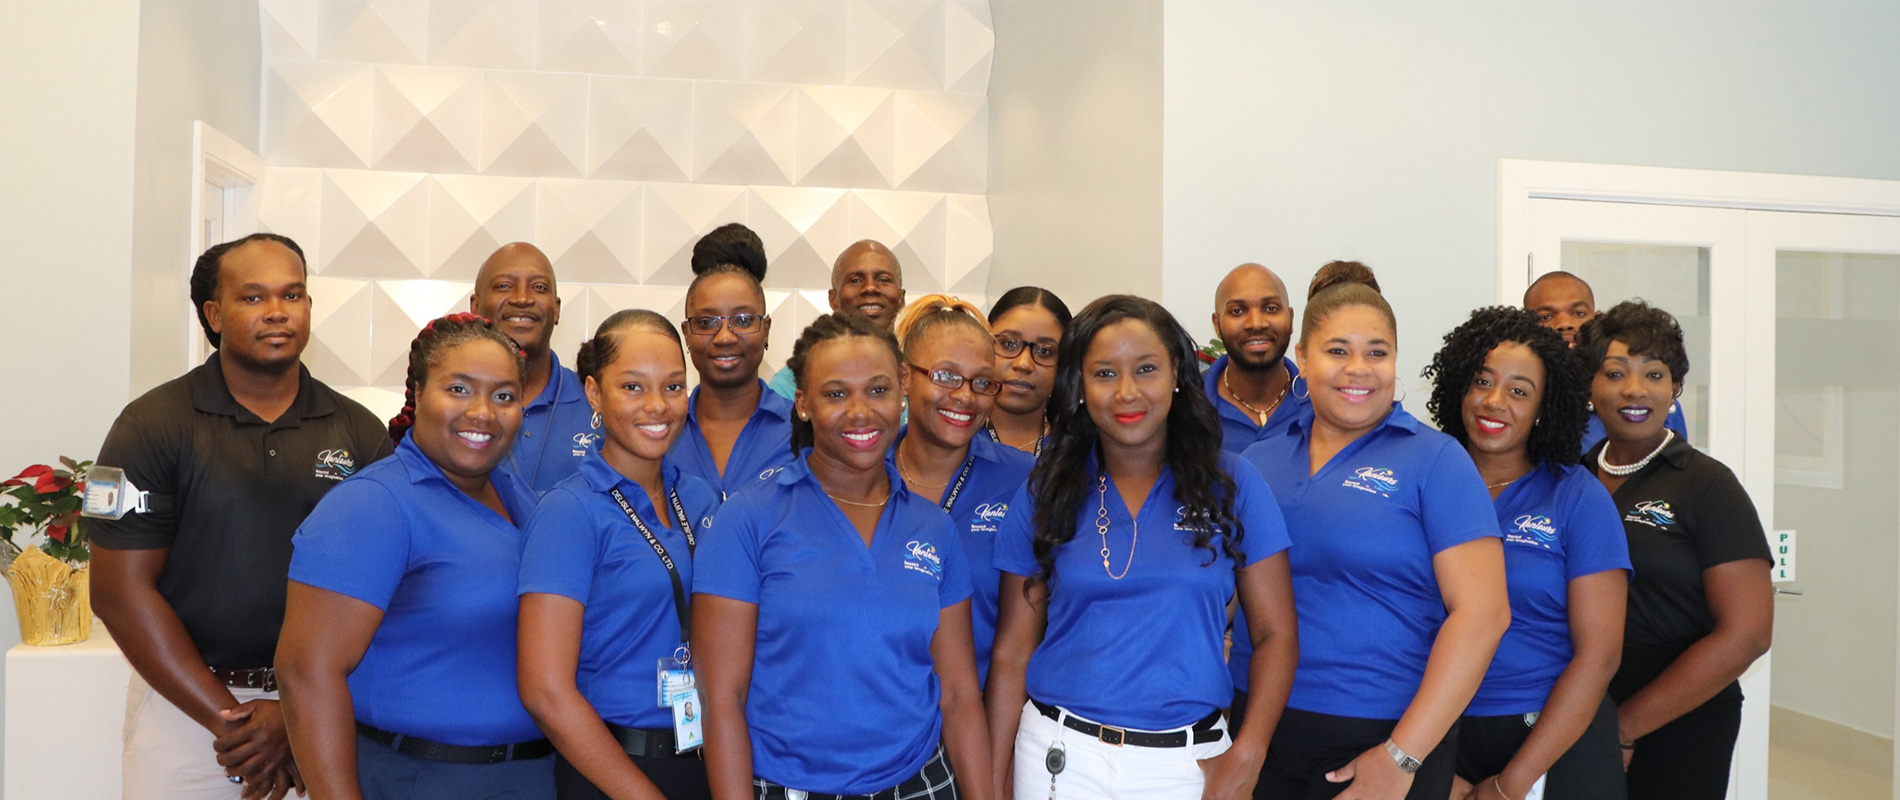 Team Photo of Kantours Destination Management Specialists in St. Kitts